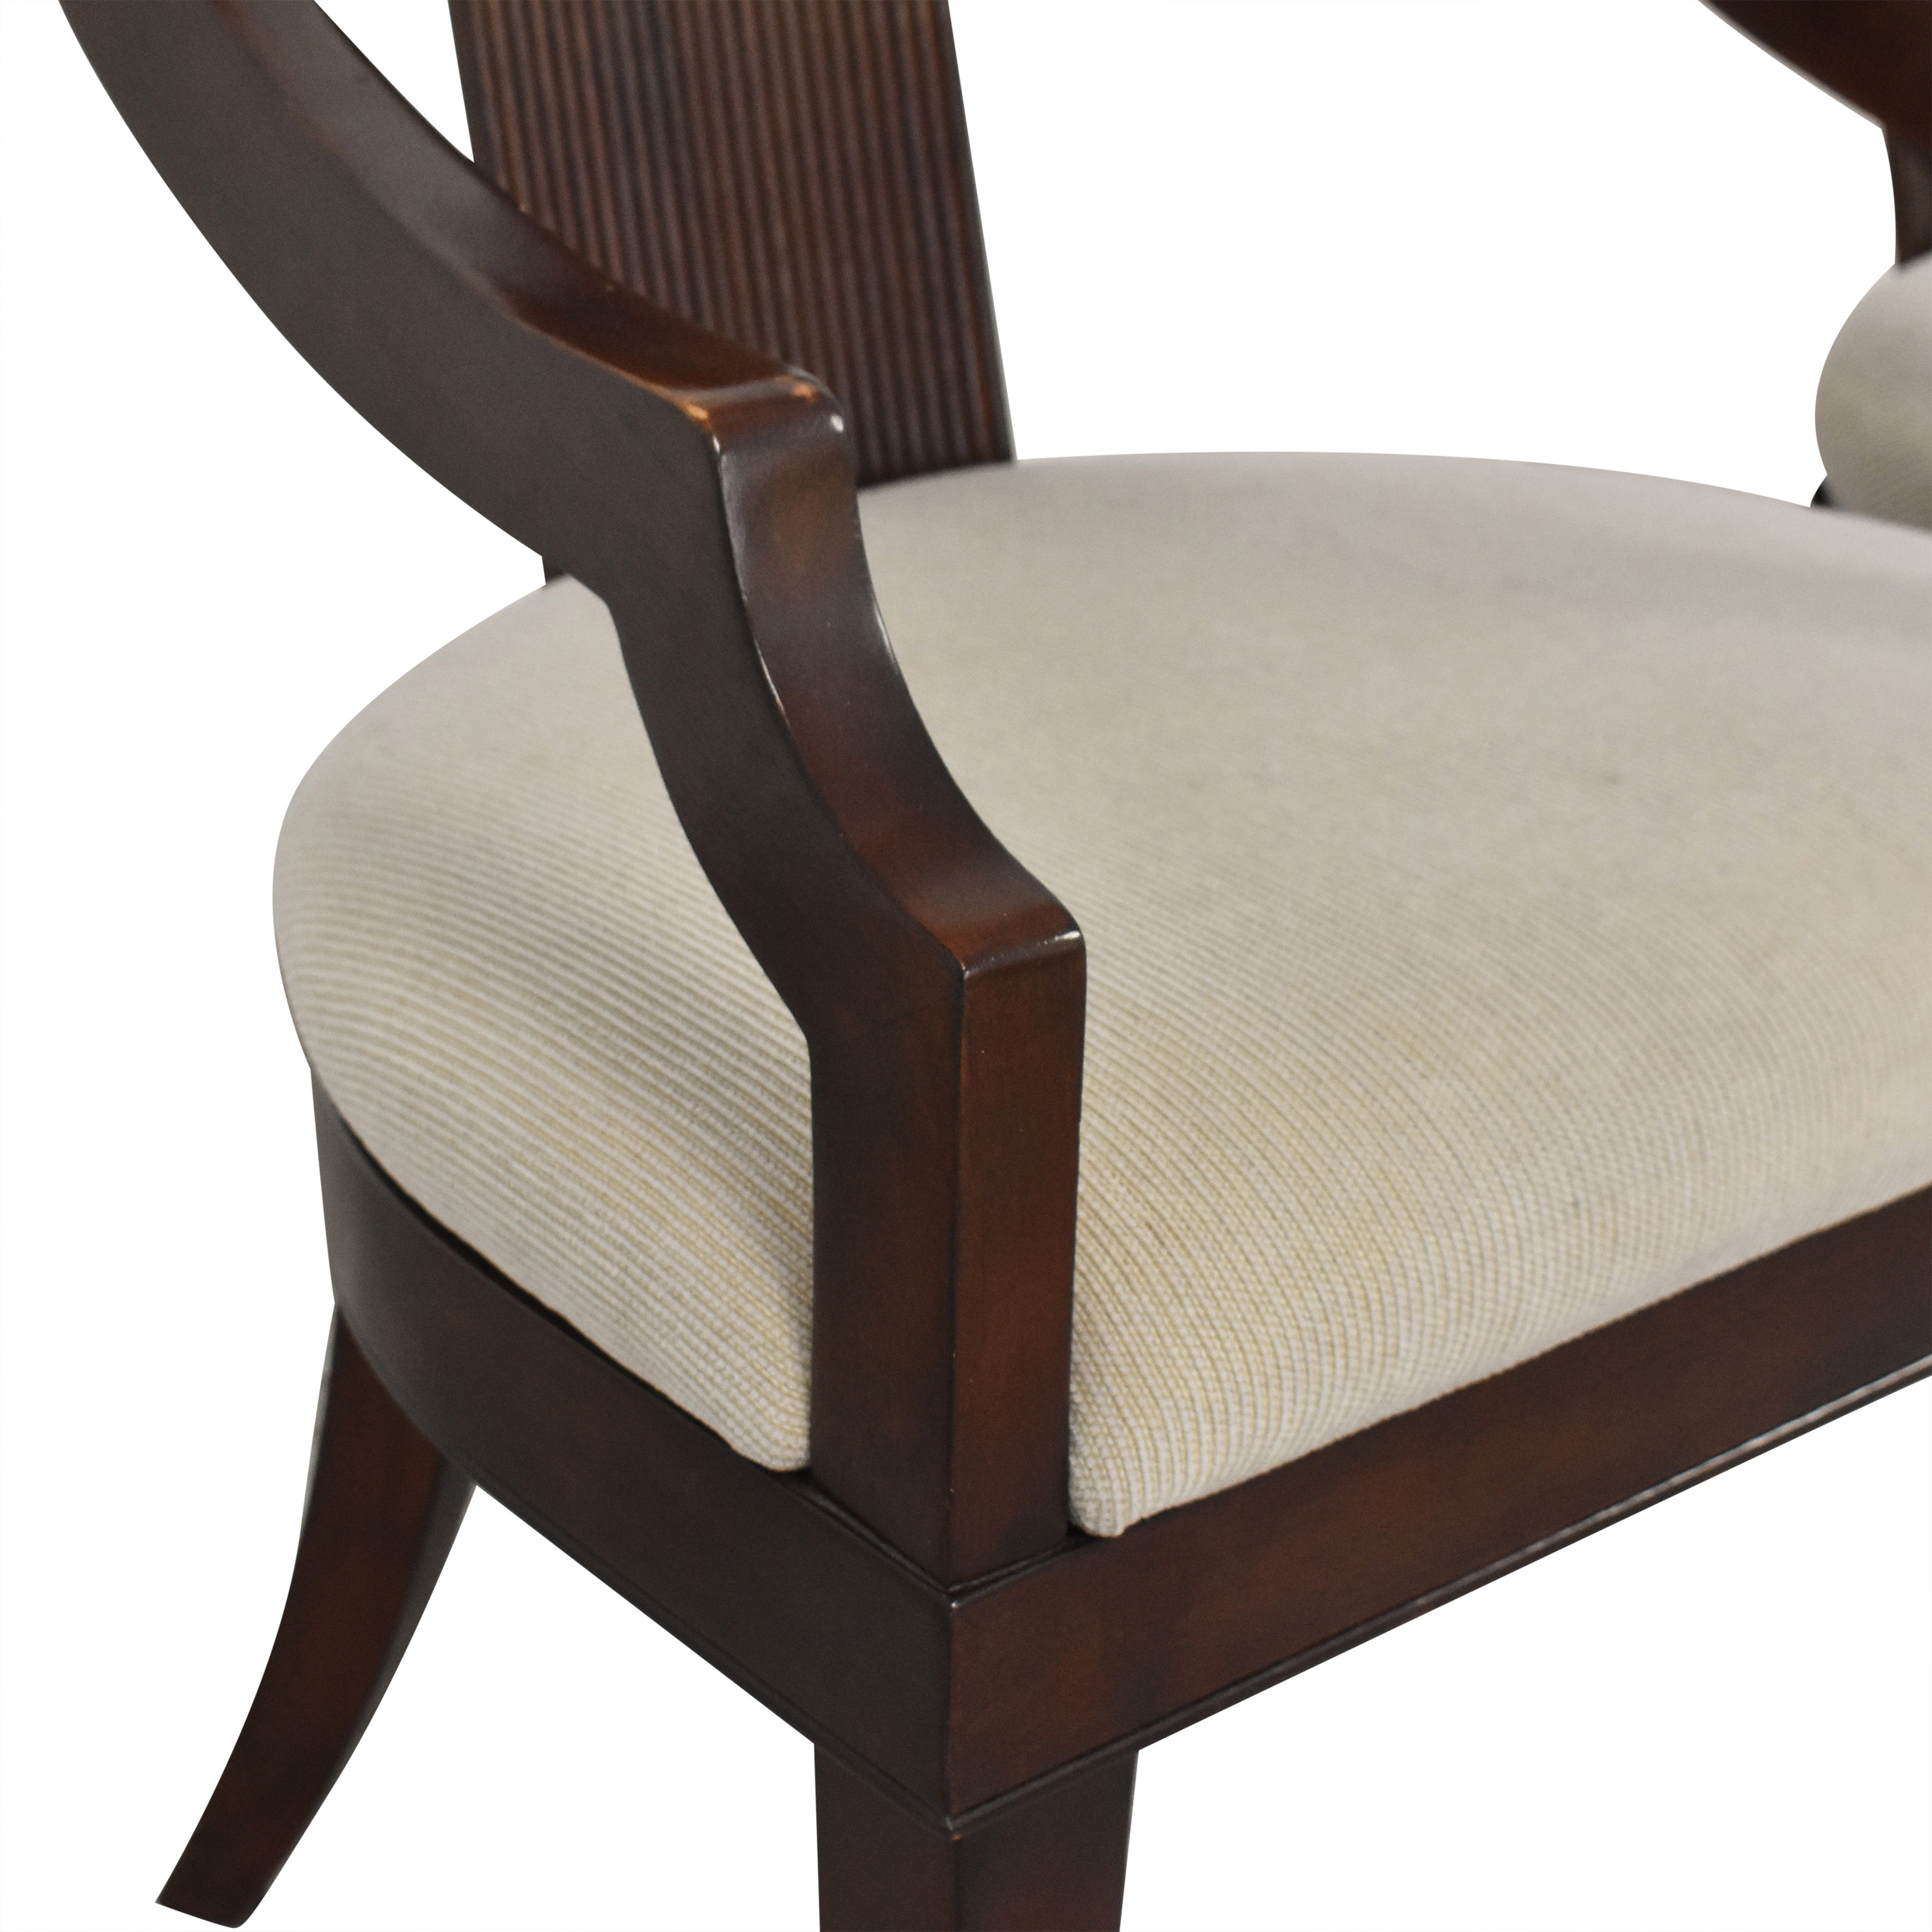 Macy's Macy's Upholstered Dining Chairs used